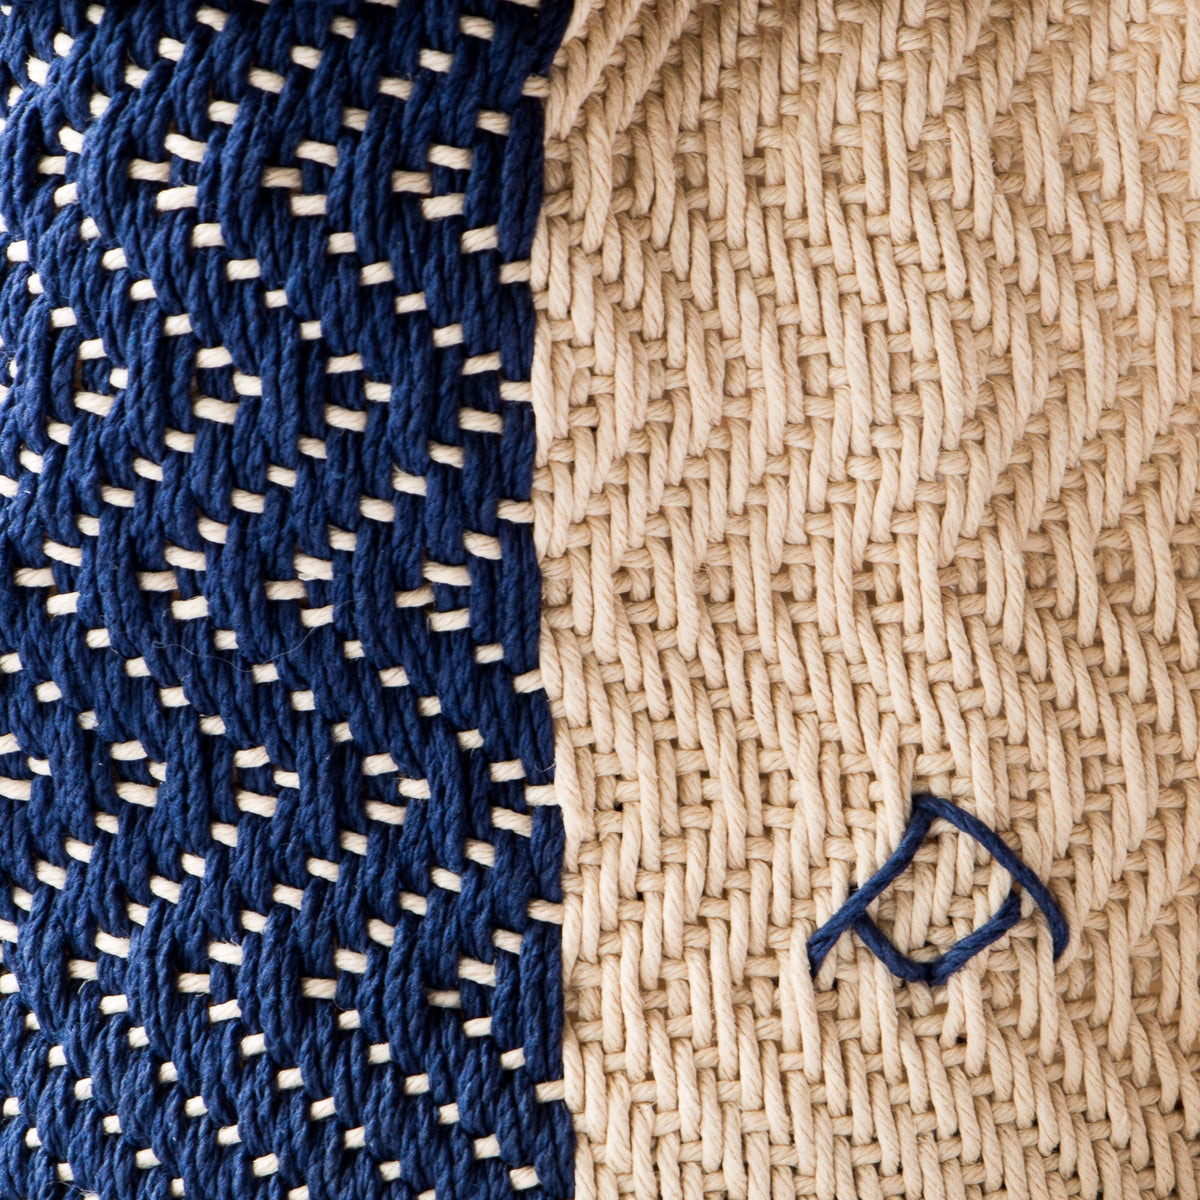 Handwoven Marine and Ecru Hemp Pattern - Chic & Basta